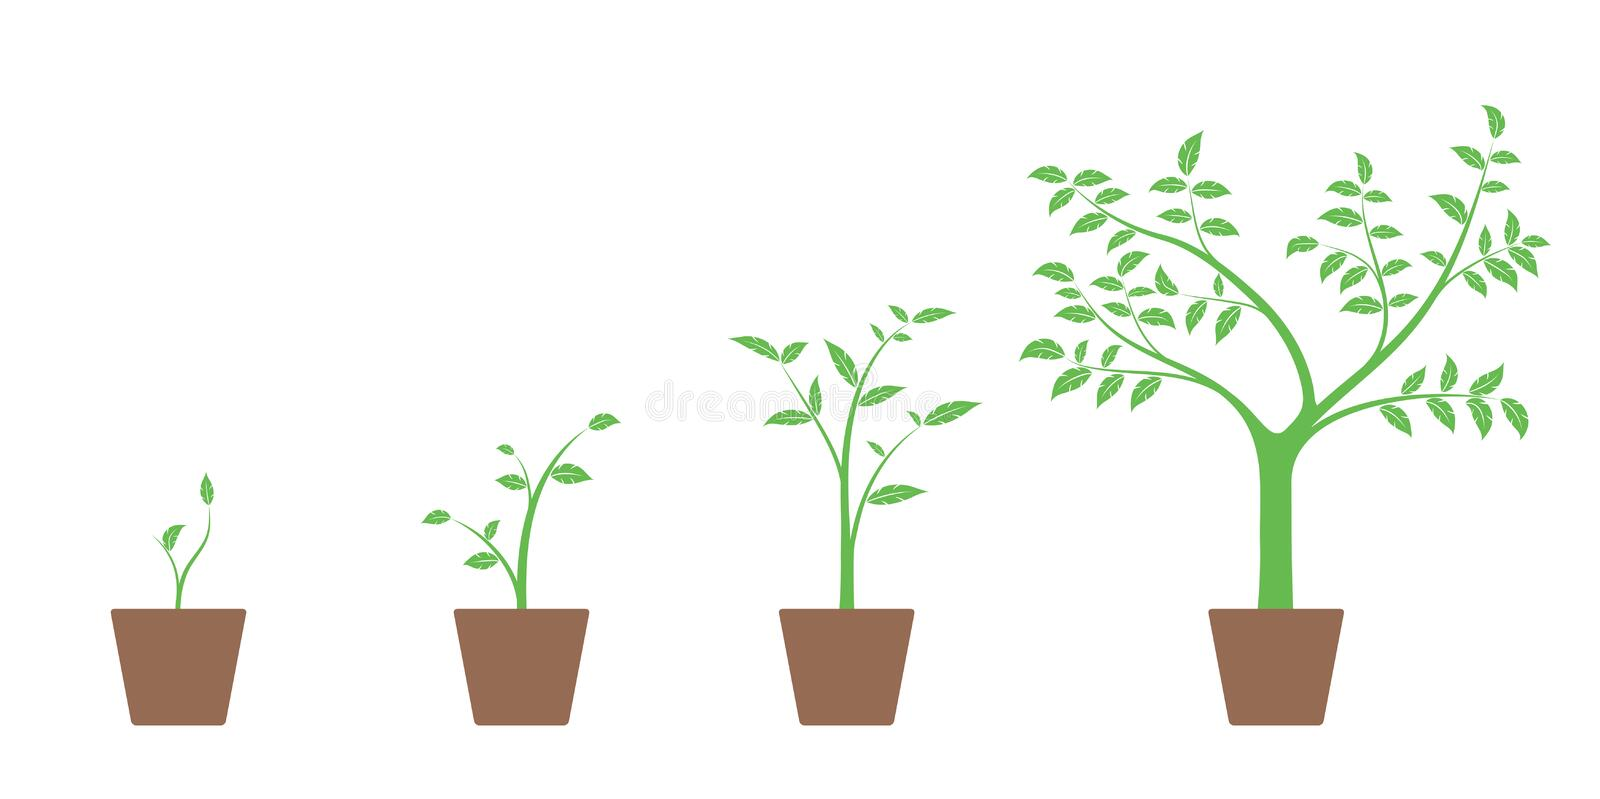 Realistic set of vector illustrations of growth phases of green plant and tree in pot, vector illustration